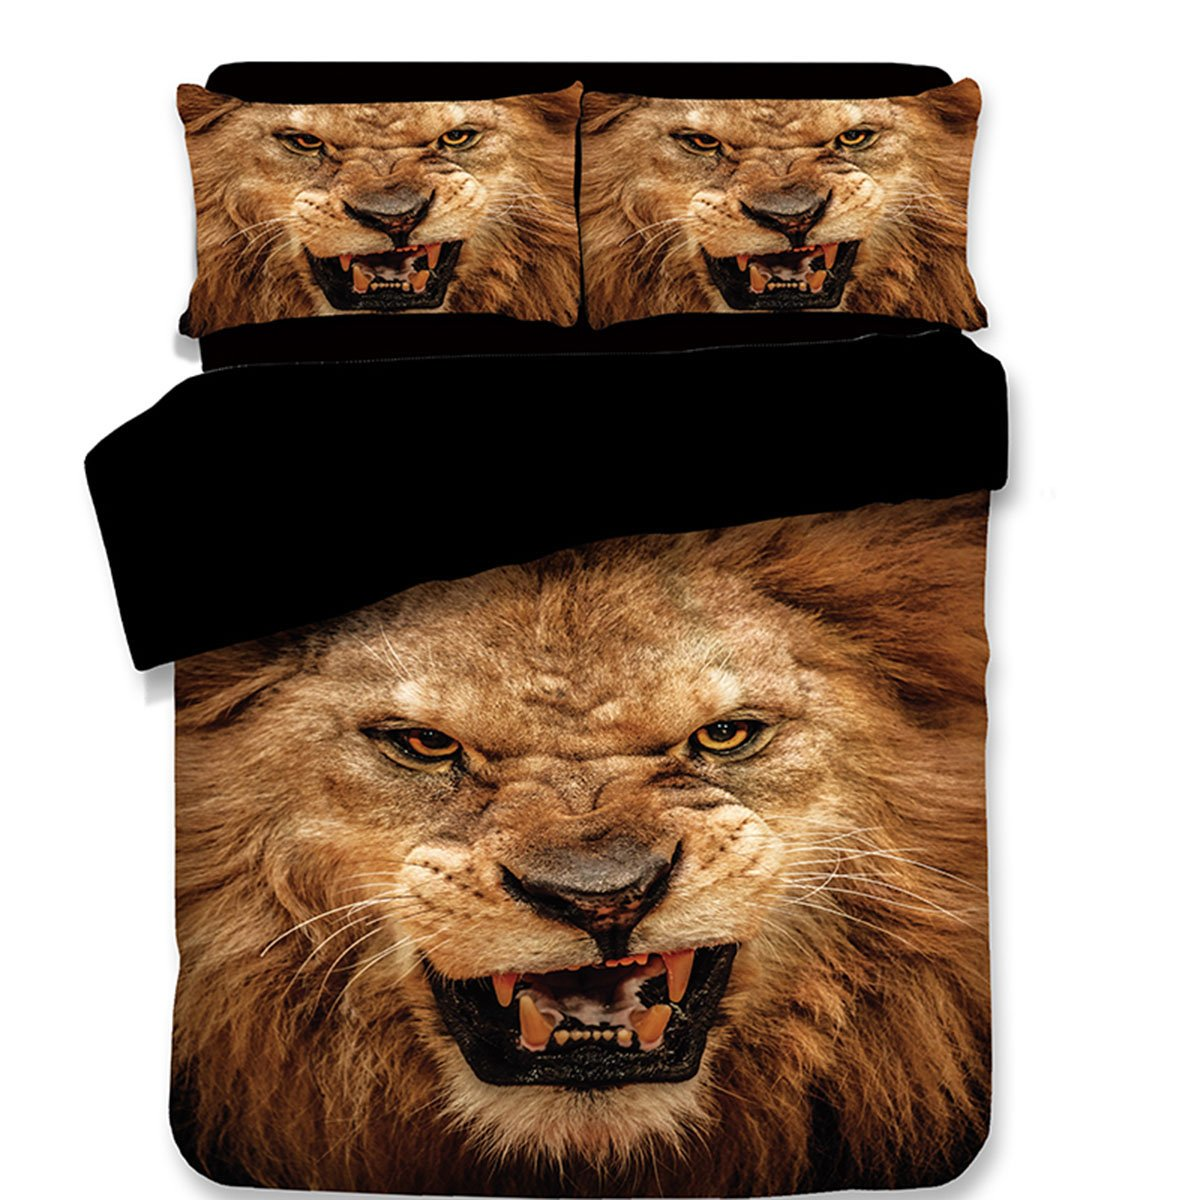 Koongso 3D Lion Digital Print Bedding Sets Reversible 3 Pieces Animal Print for Kids Boys Teens Duvet Cover Set,Twin/Full/Queen/King Size by Koongso